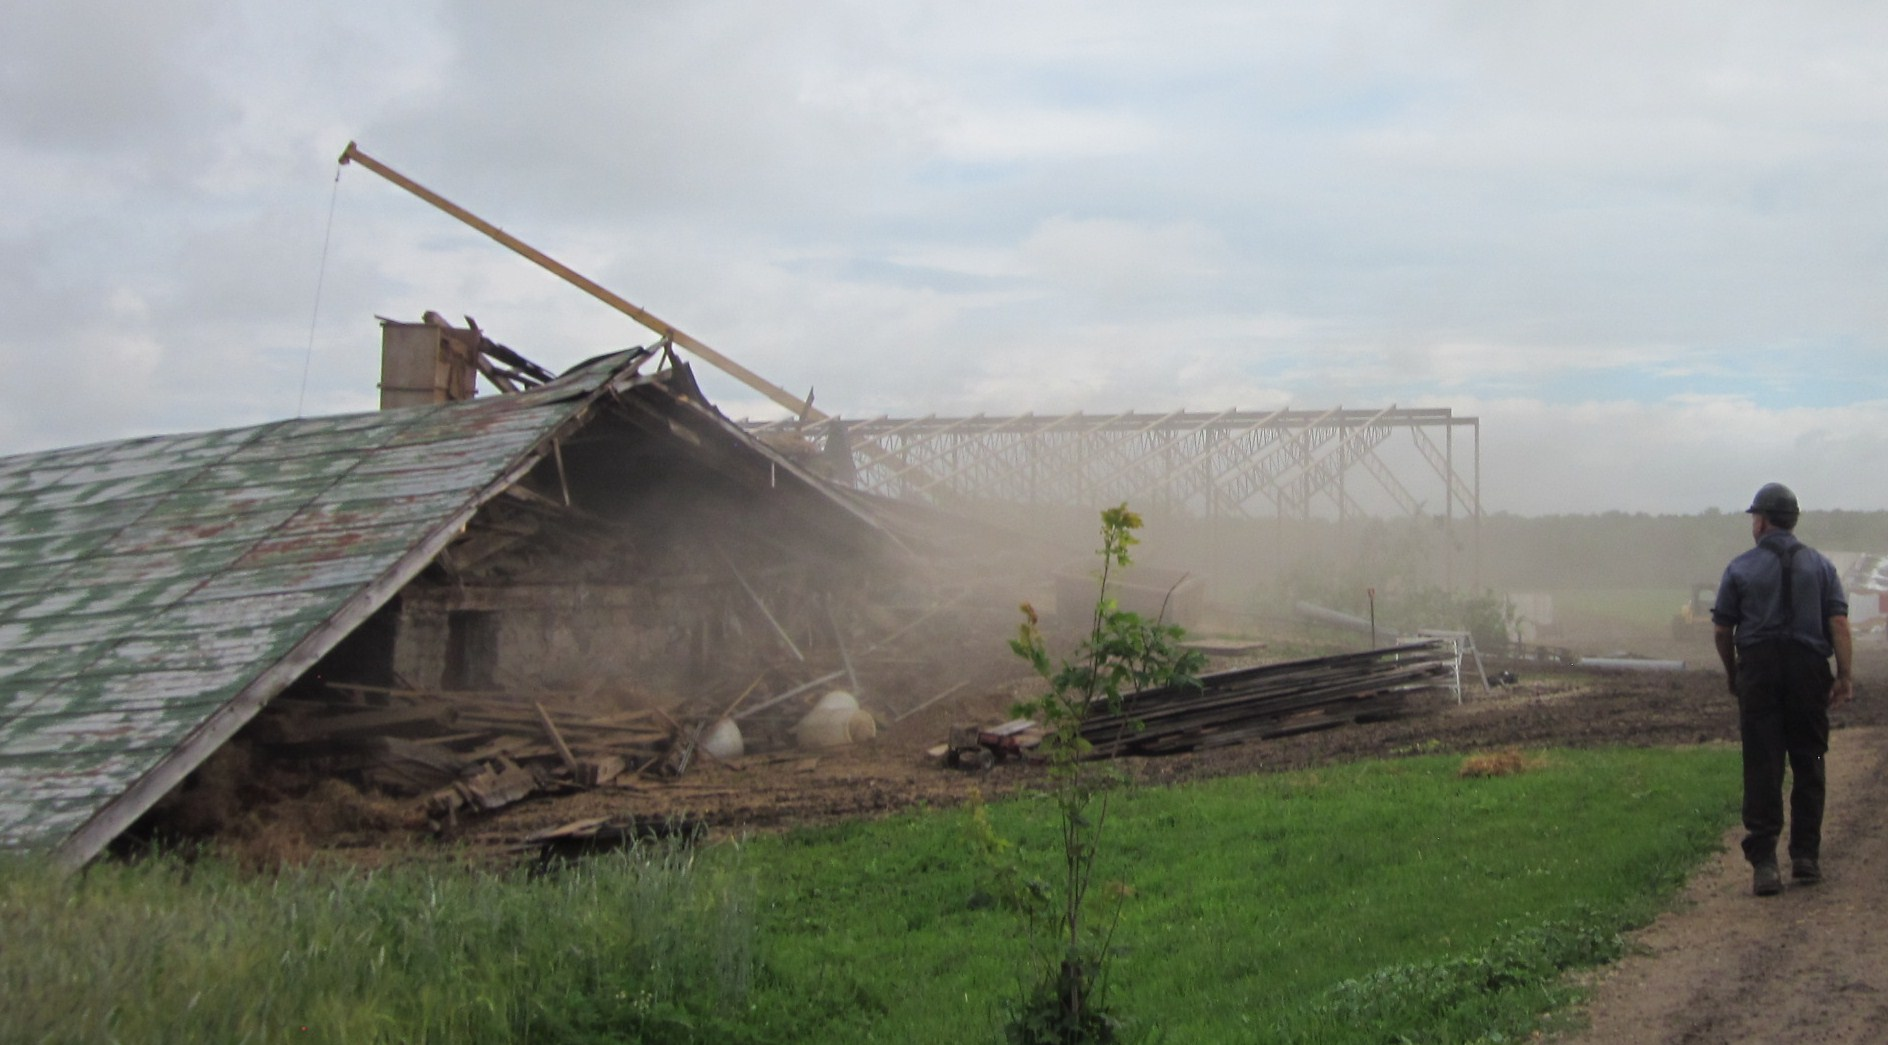 The old bank barn lies in a pile of dust while the frame of the new steel barn is almost completed (Willa Wick photo)